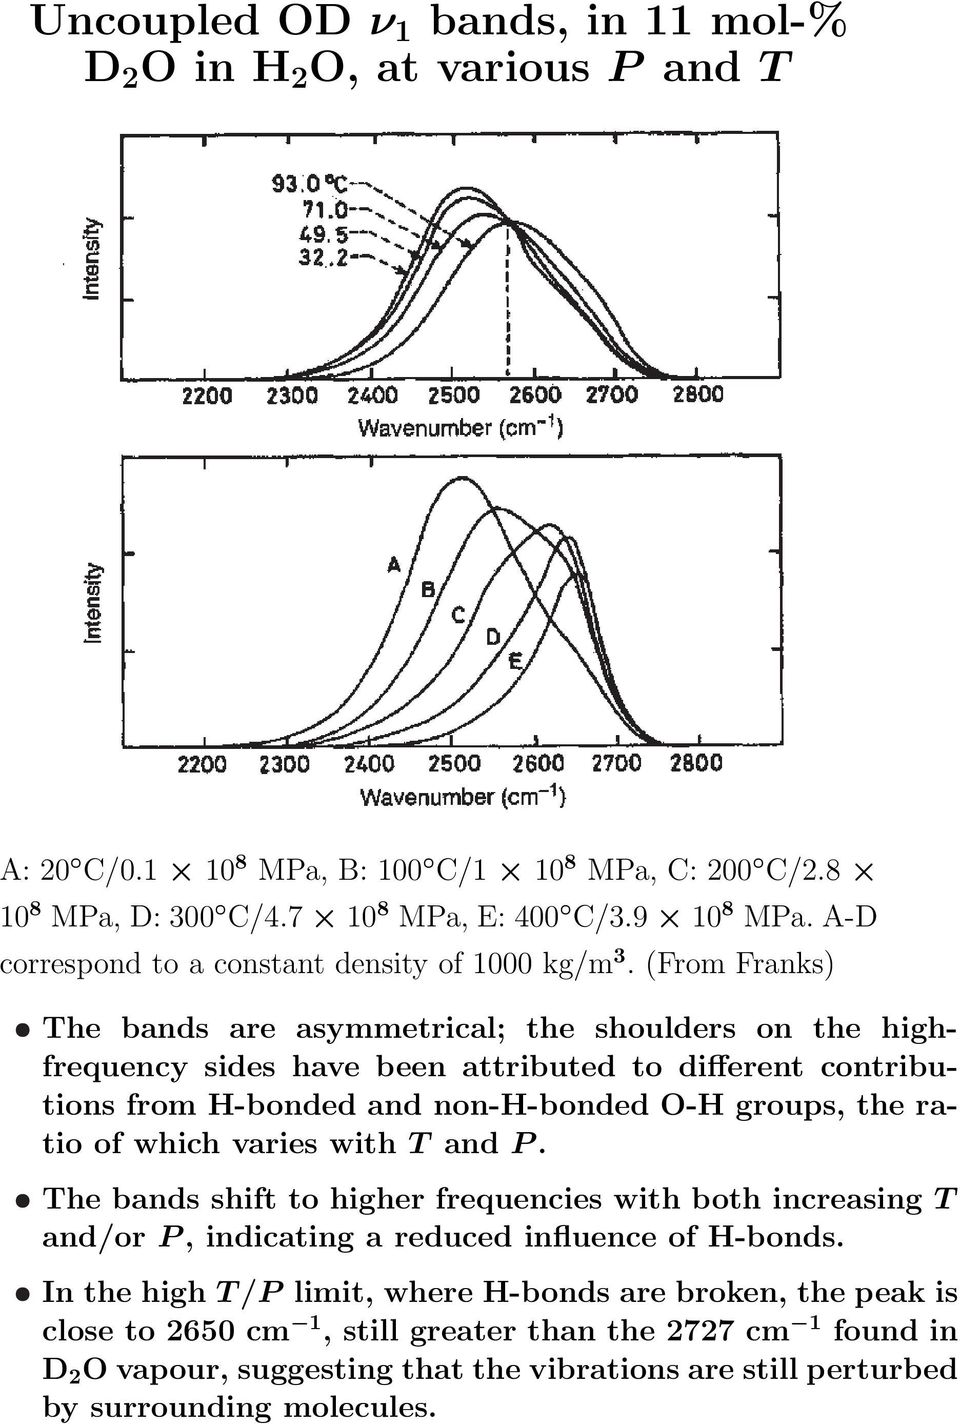 (From Franks) The bands are asymmetrical; the shoulders on the highfrequency sides have been attributed to different contributions from H-bonded and non-h-bonded O-H groups, the ratio of which